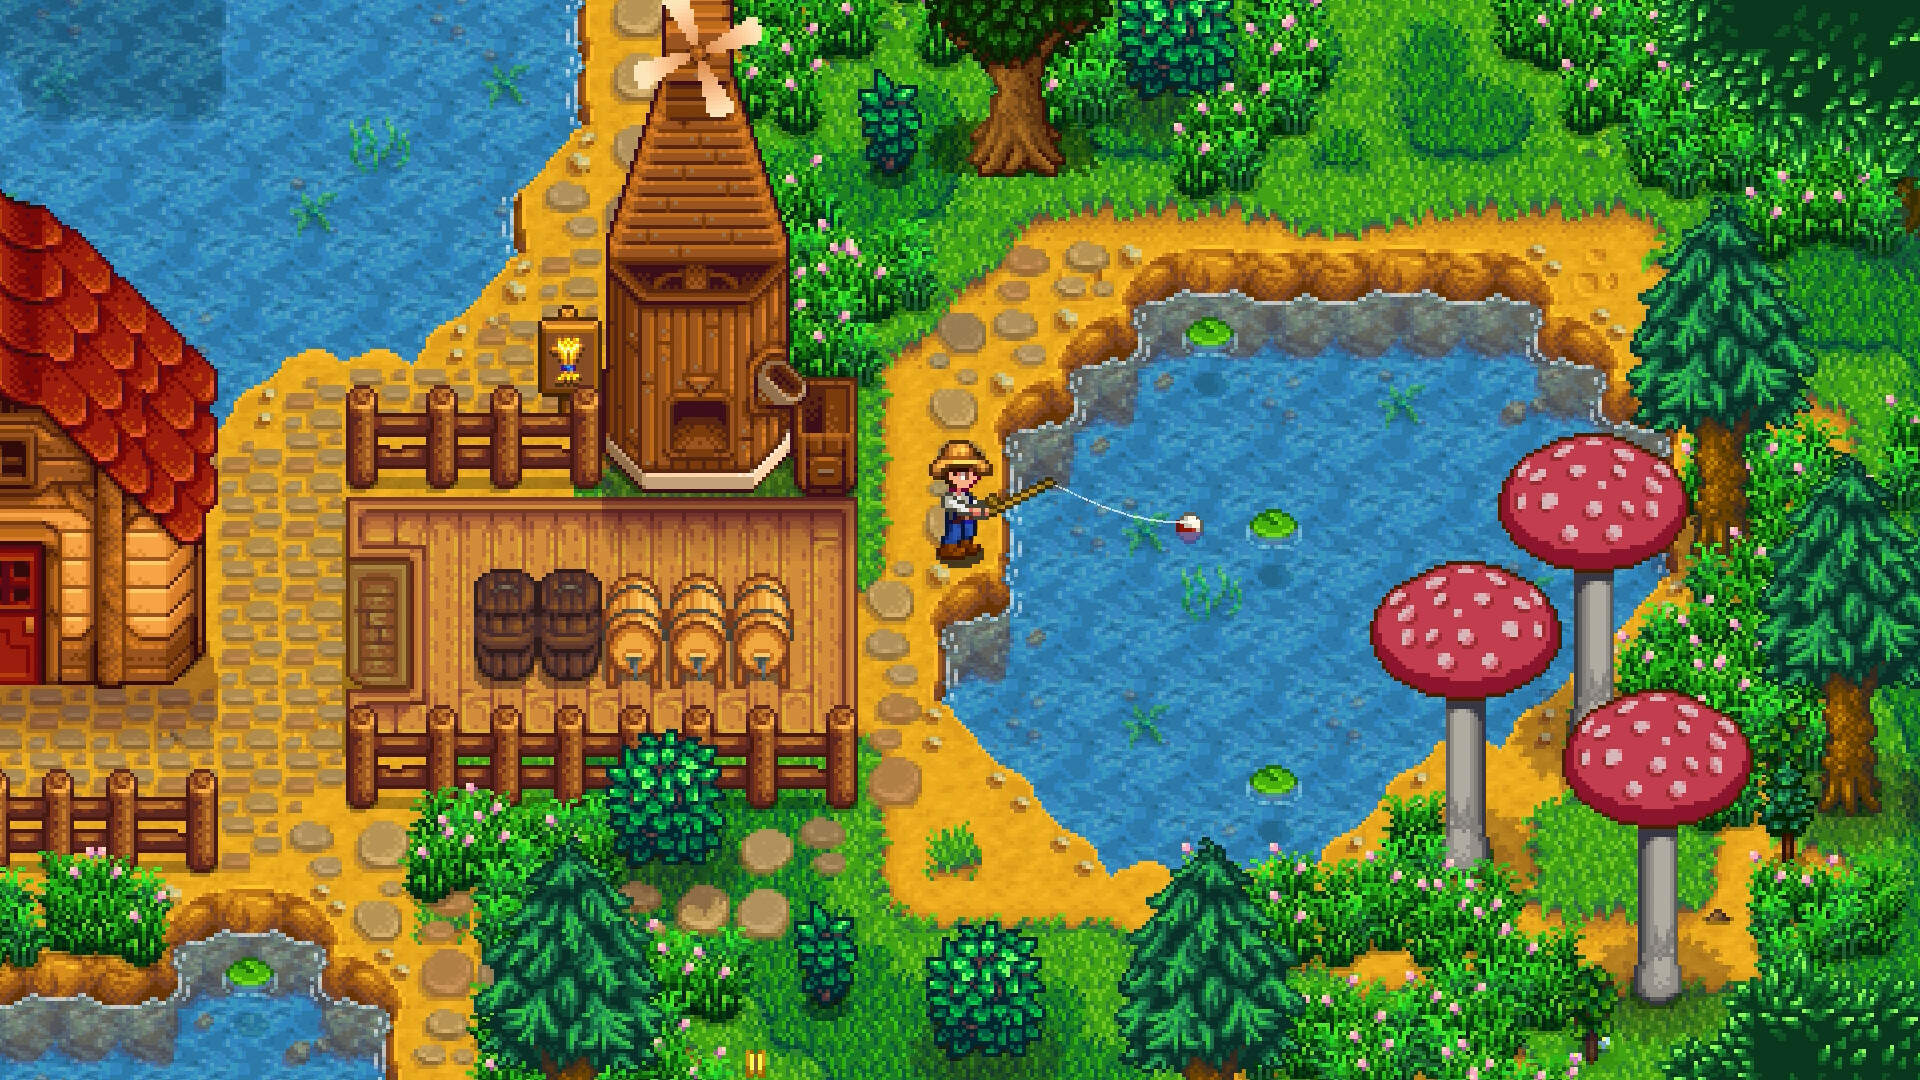 A Massive Stardew Valley Update is Dropping Very Soon